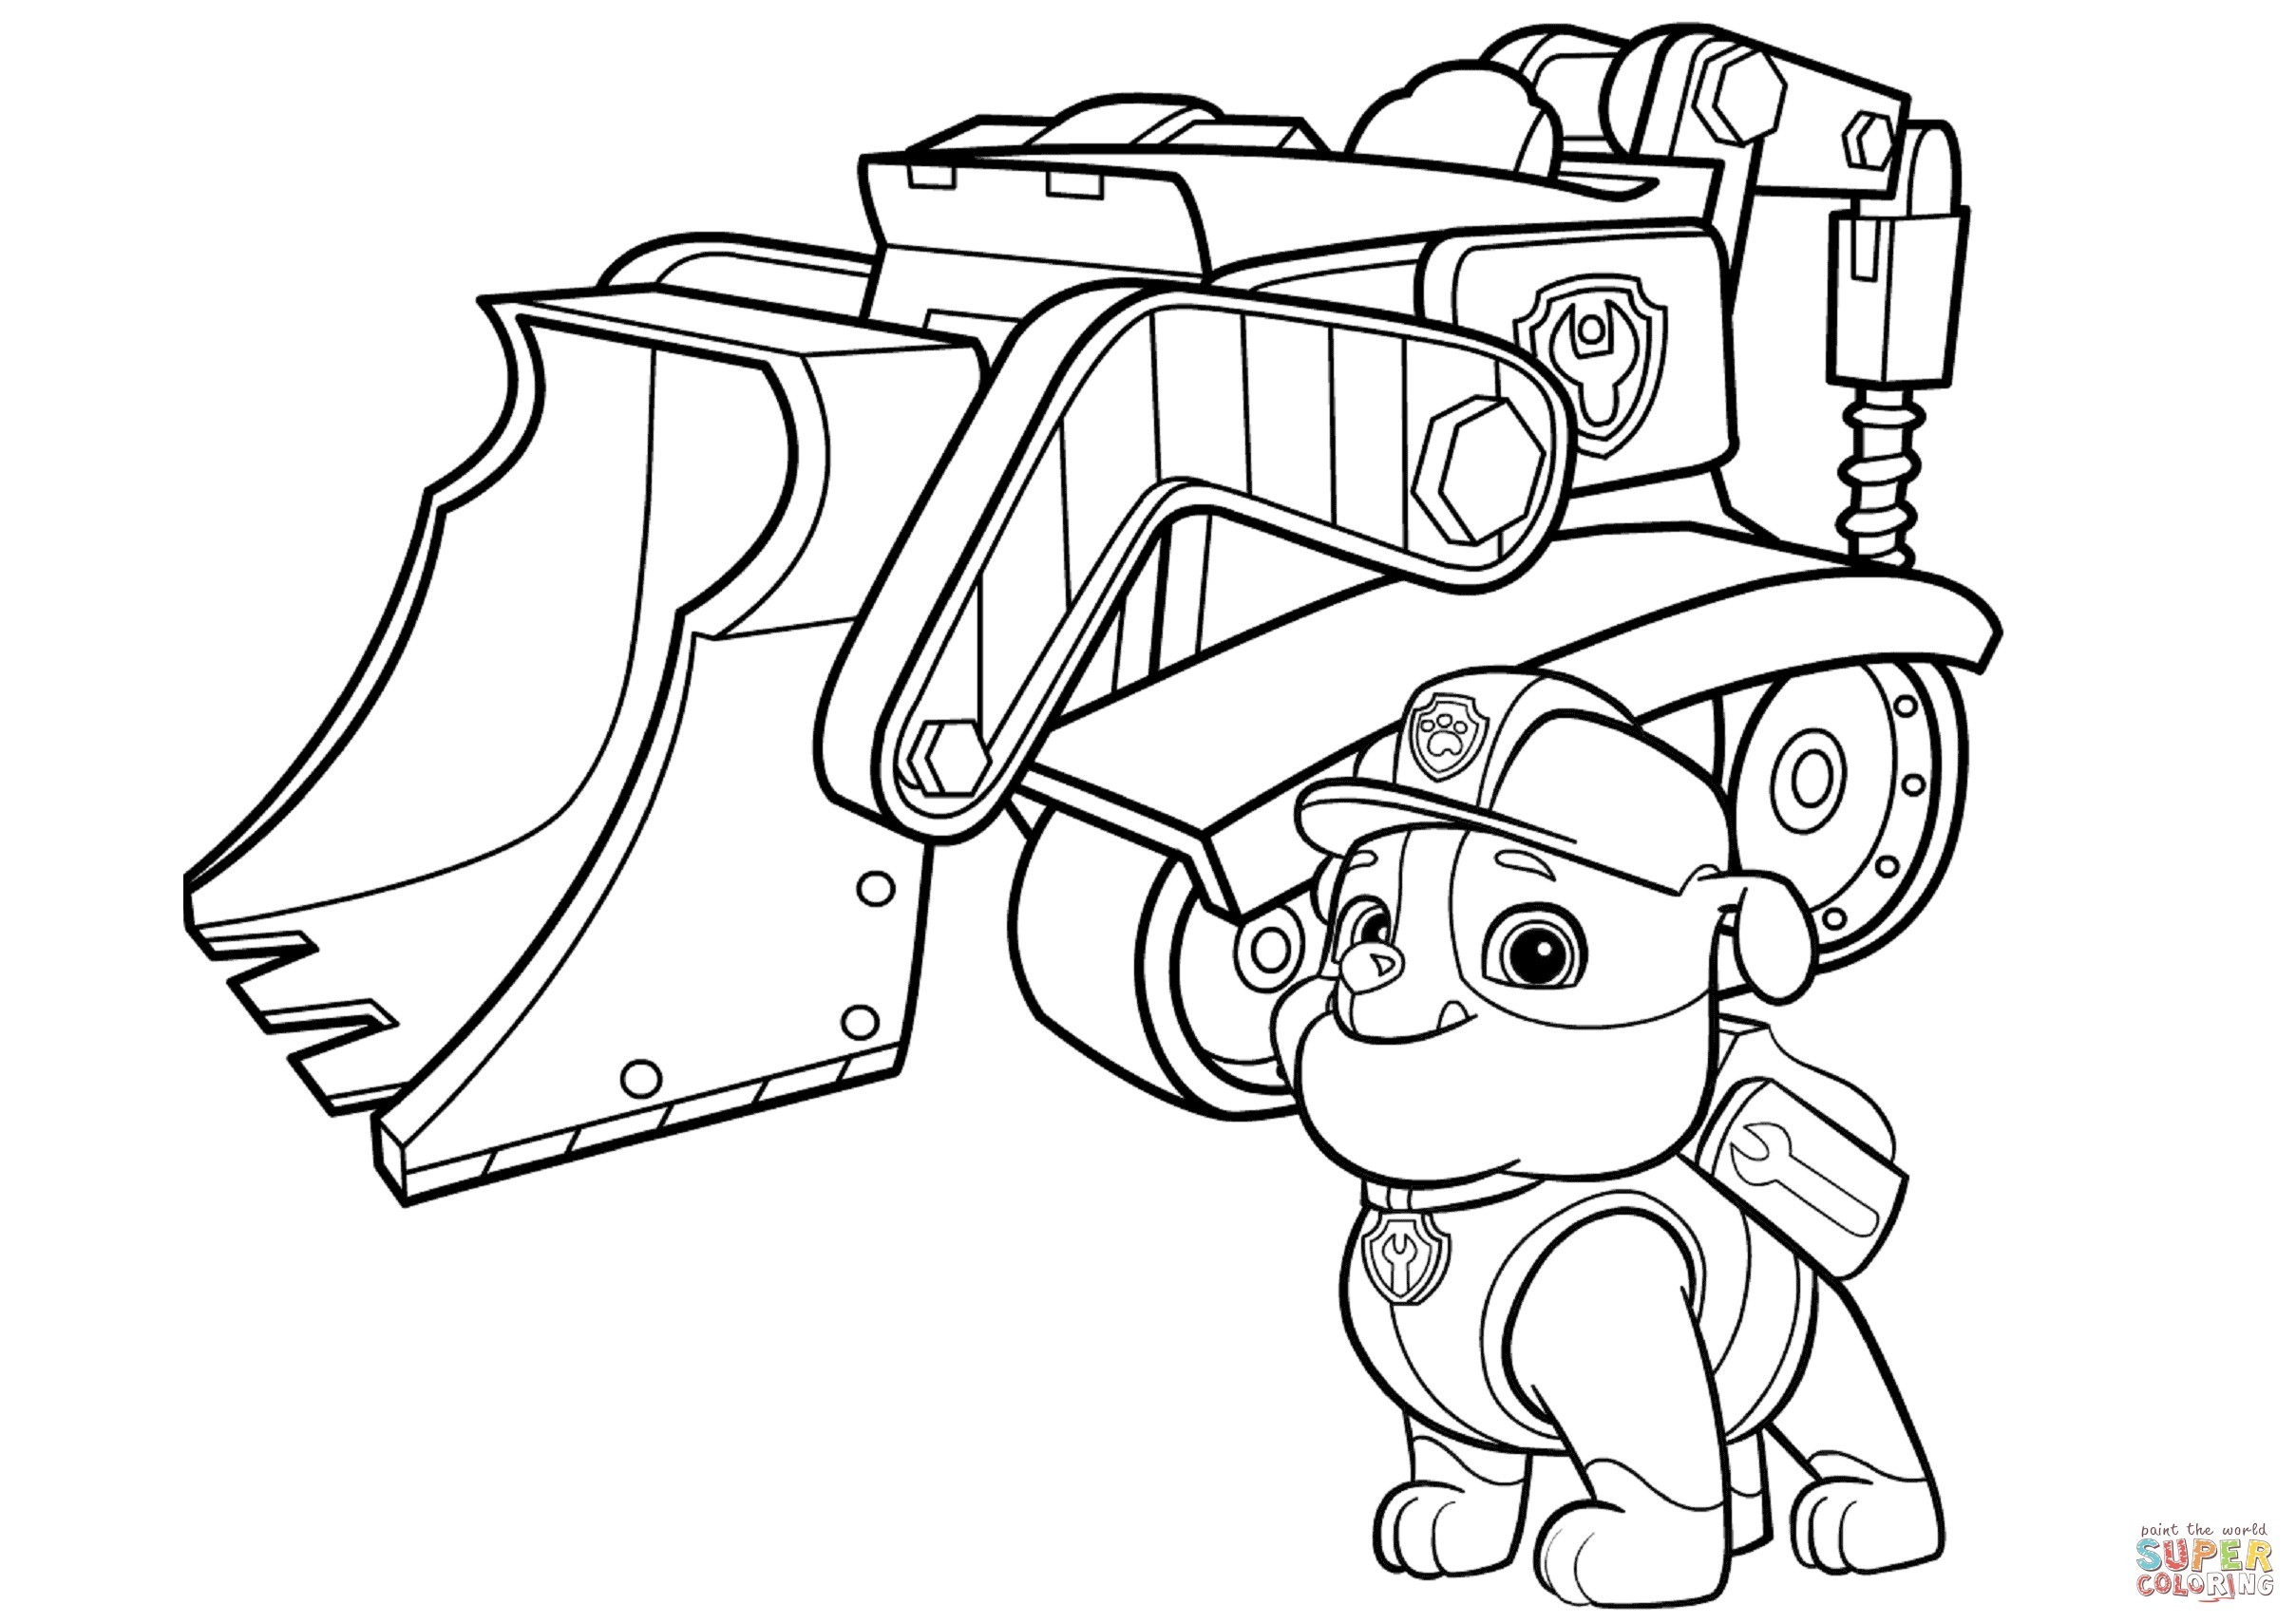 Ryder Coloring Pages - Coloring Home